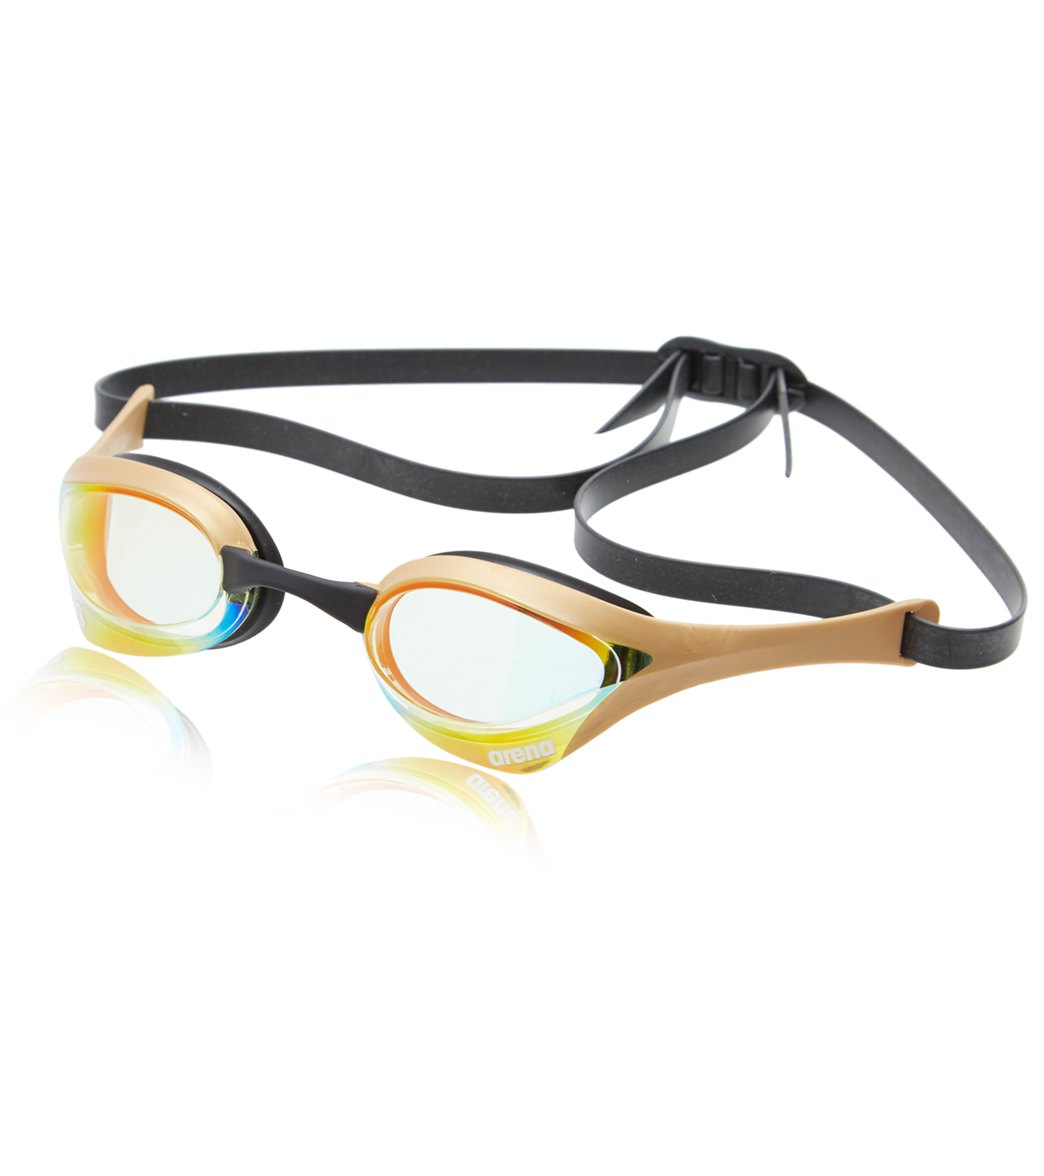 Arena Cobra Ultra Swipe Anti Fog Swimming Goggles